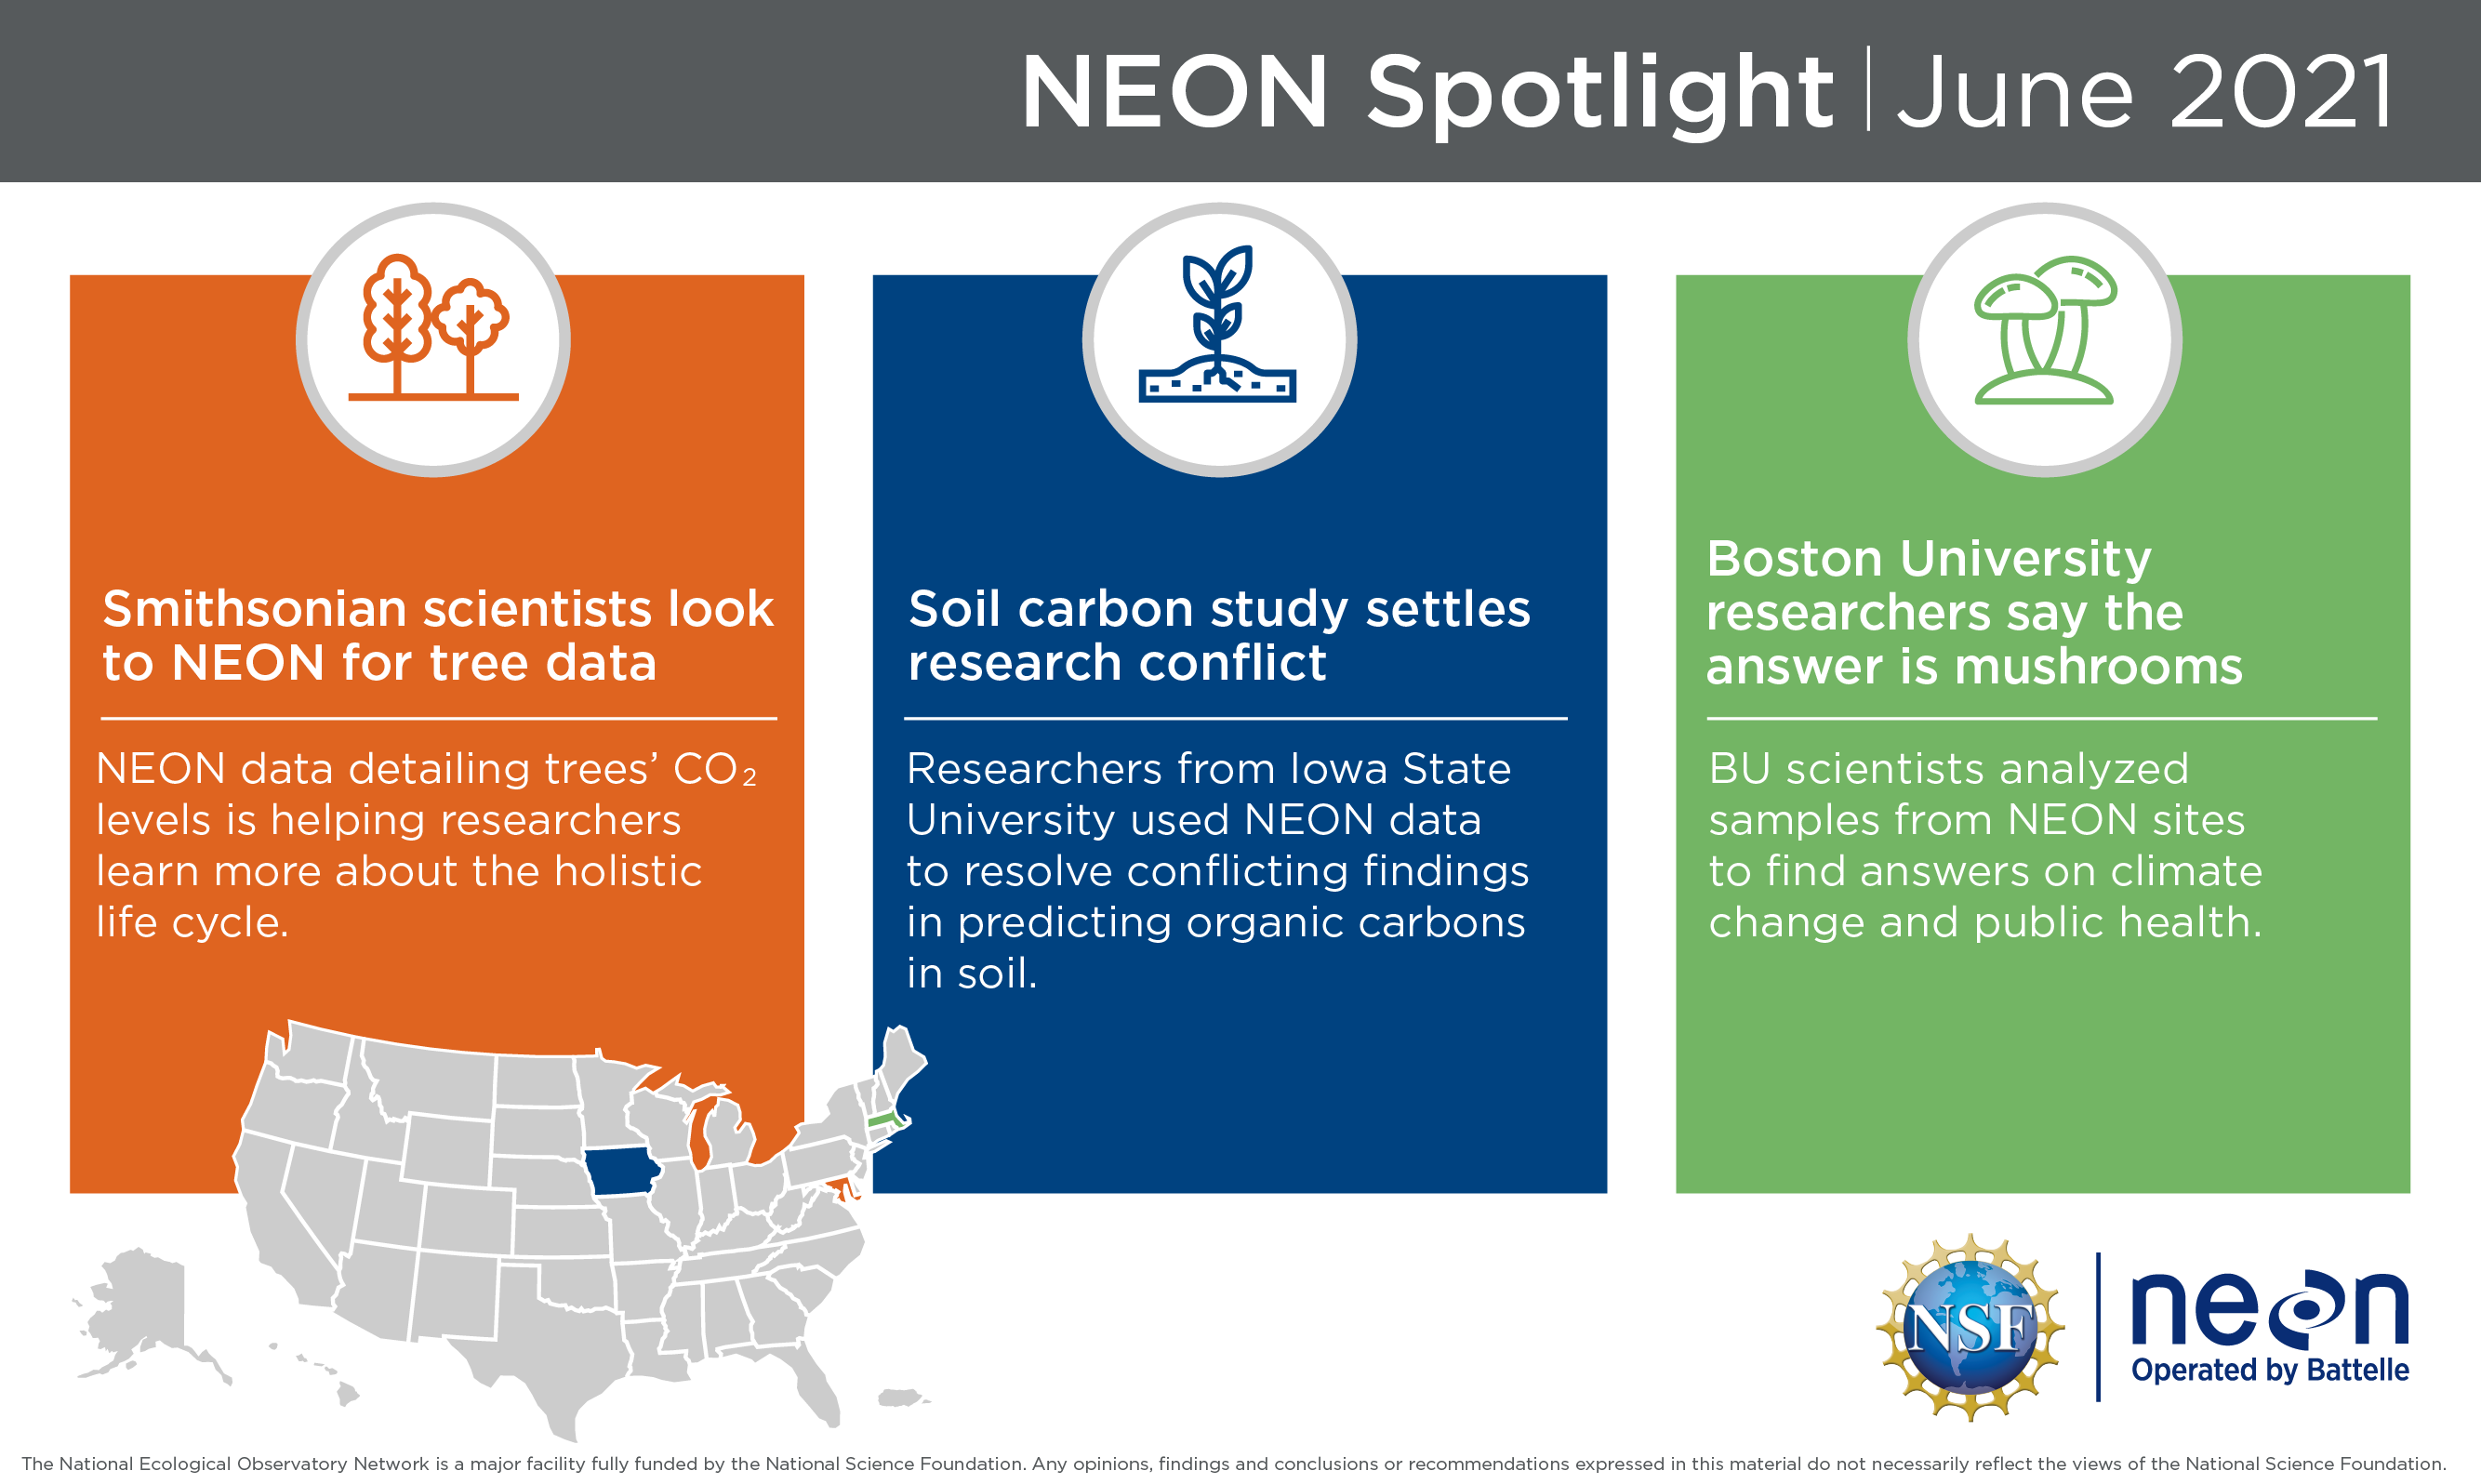 Photo: What's New In NEON June 2021